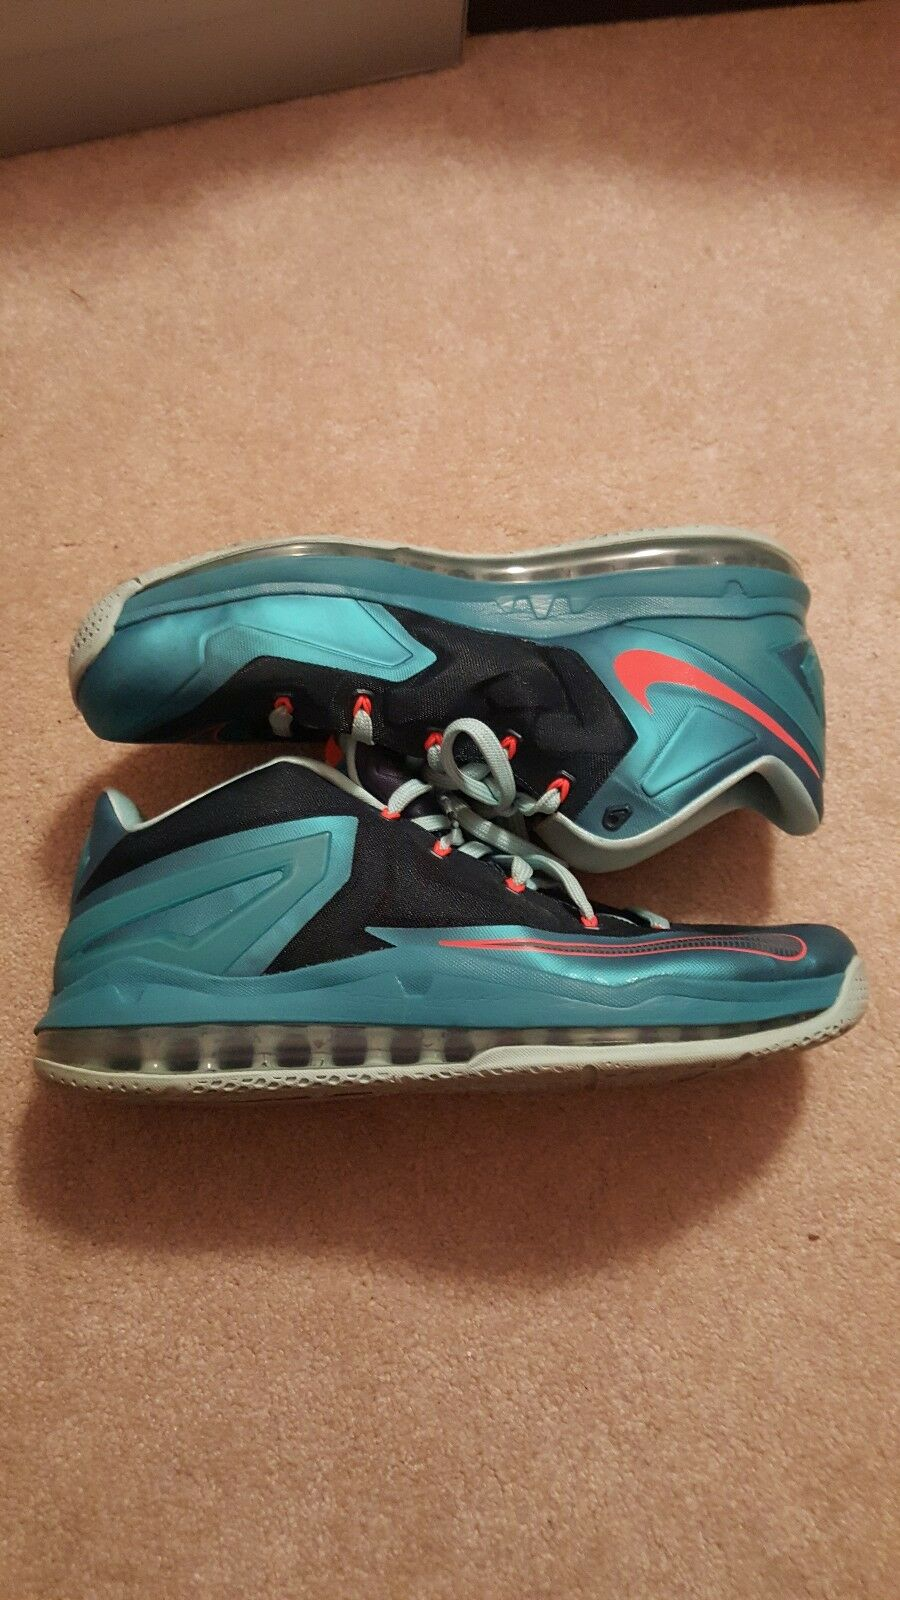 Lebron 11 Low Turbo Green size 13